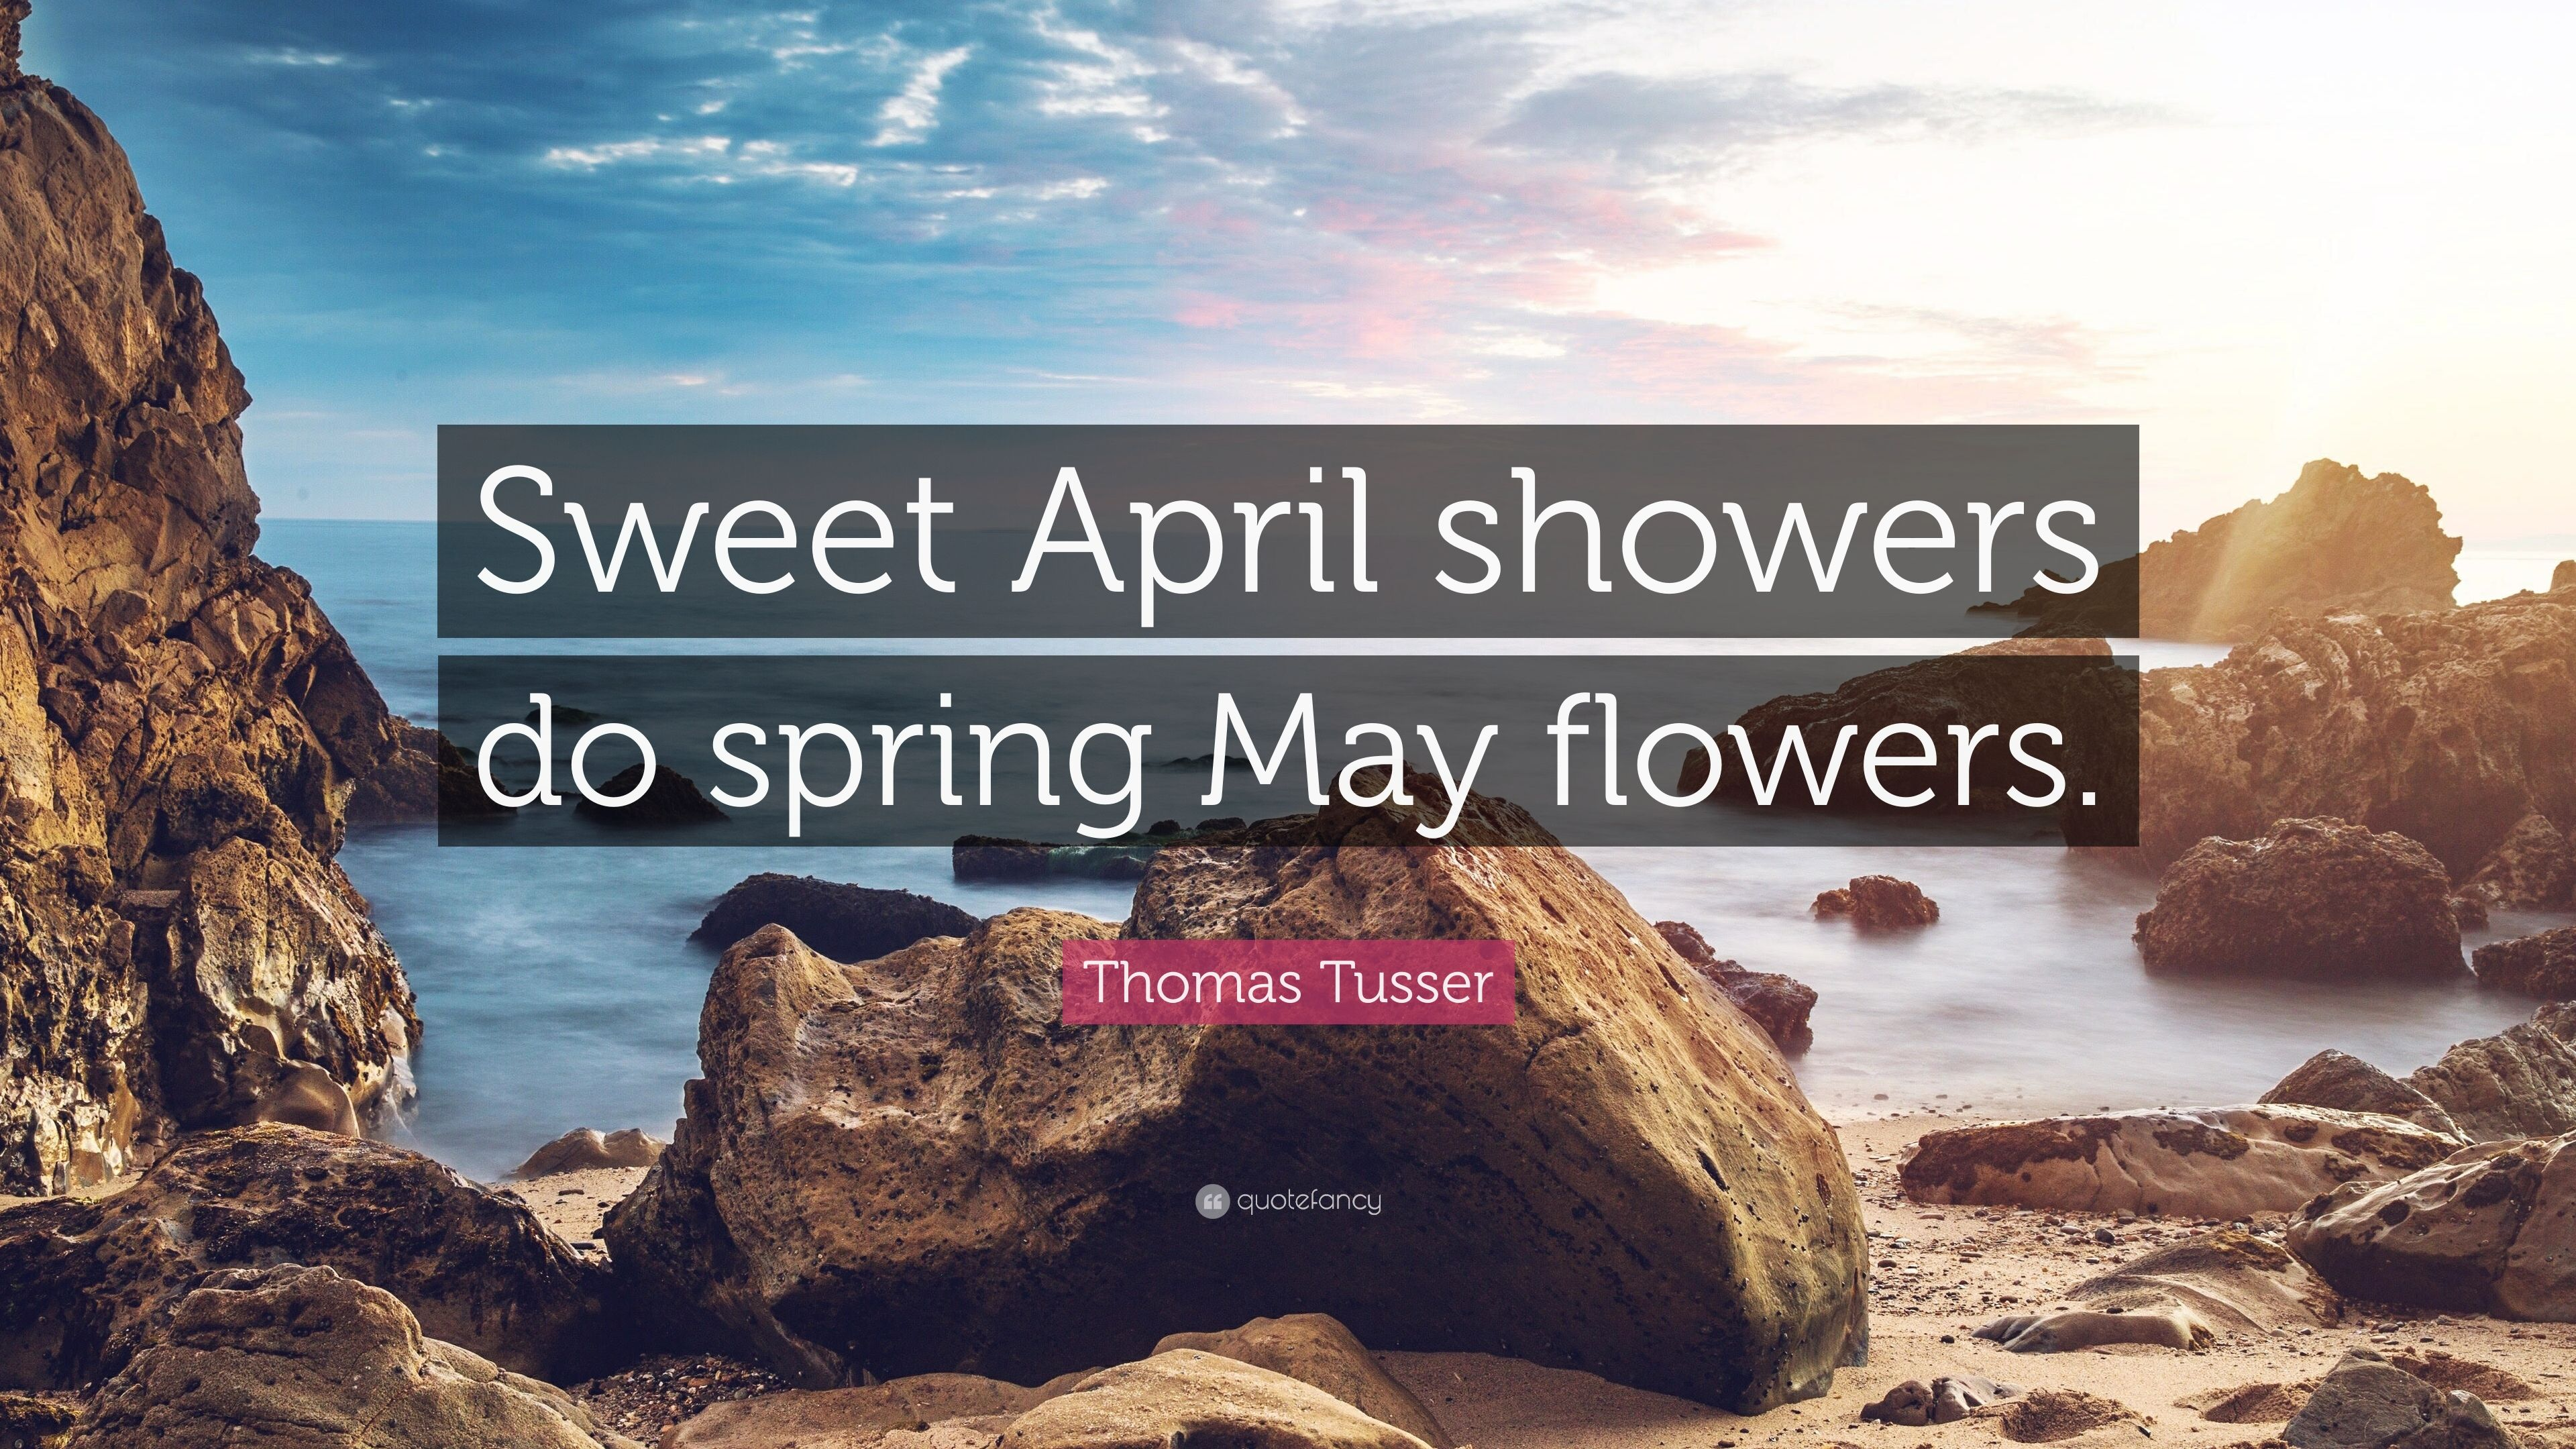 Thomas tusser quote sweet april showers do spring may flowers 7 thomas tusser quote sweet april showers do spring may flowers mightylinksfo